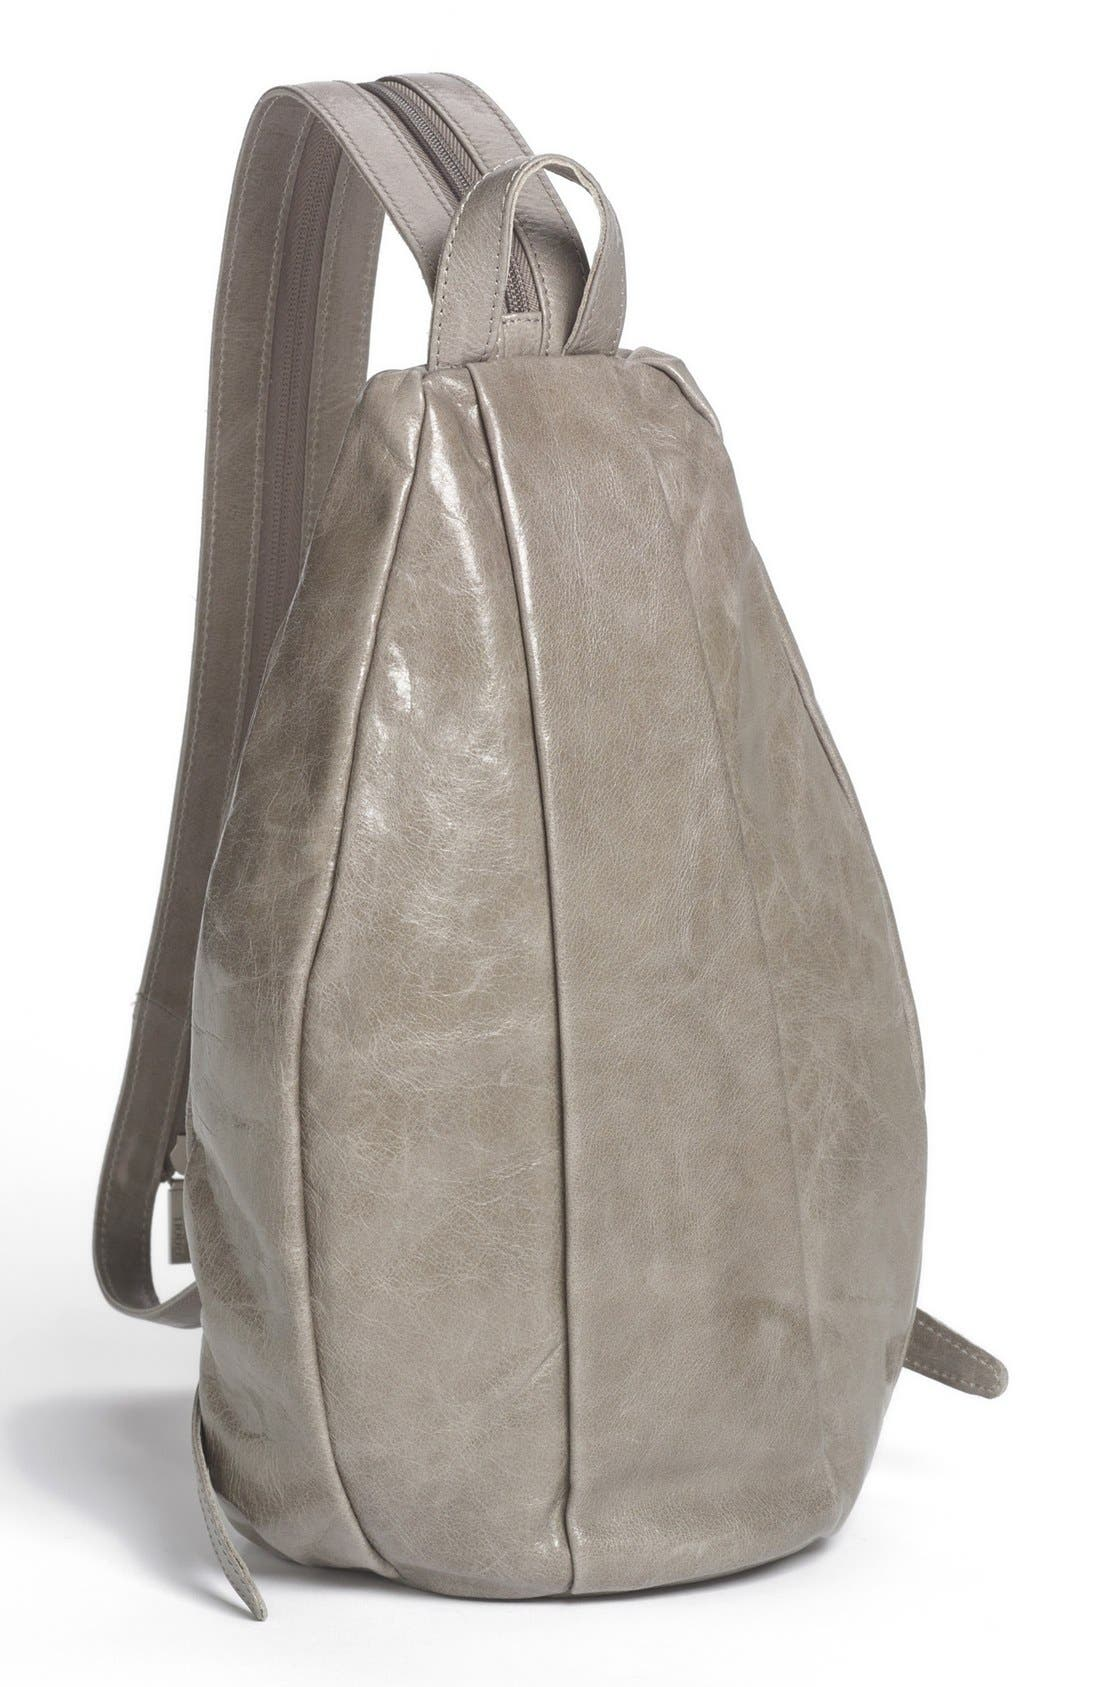 Alternate Image 1 Selected - Hobo 'Kiley' Convertible Backpack